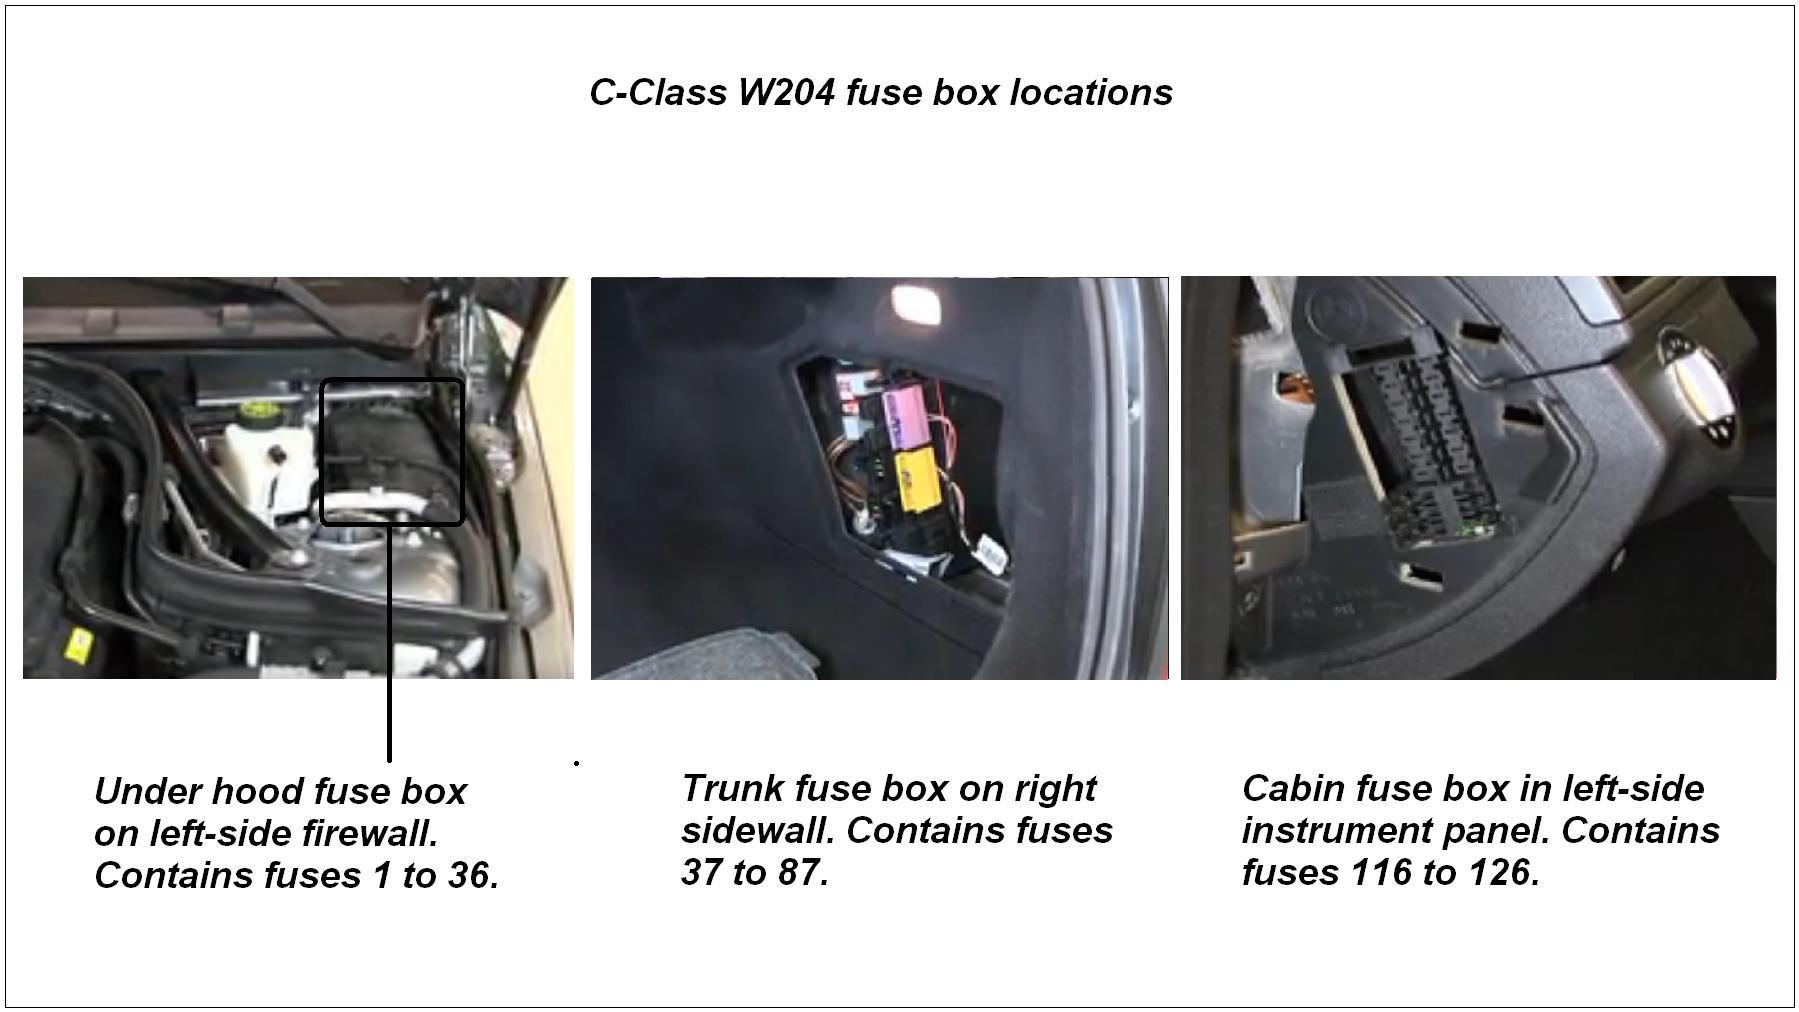 W204fuseboxlocations1799x1012 65419 mercedes benz c class w204 fuse diagrams and commonly blown fuses interior fuse box cover toyota land cruiser at mifinder.co